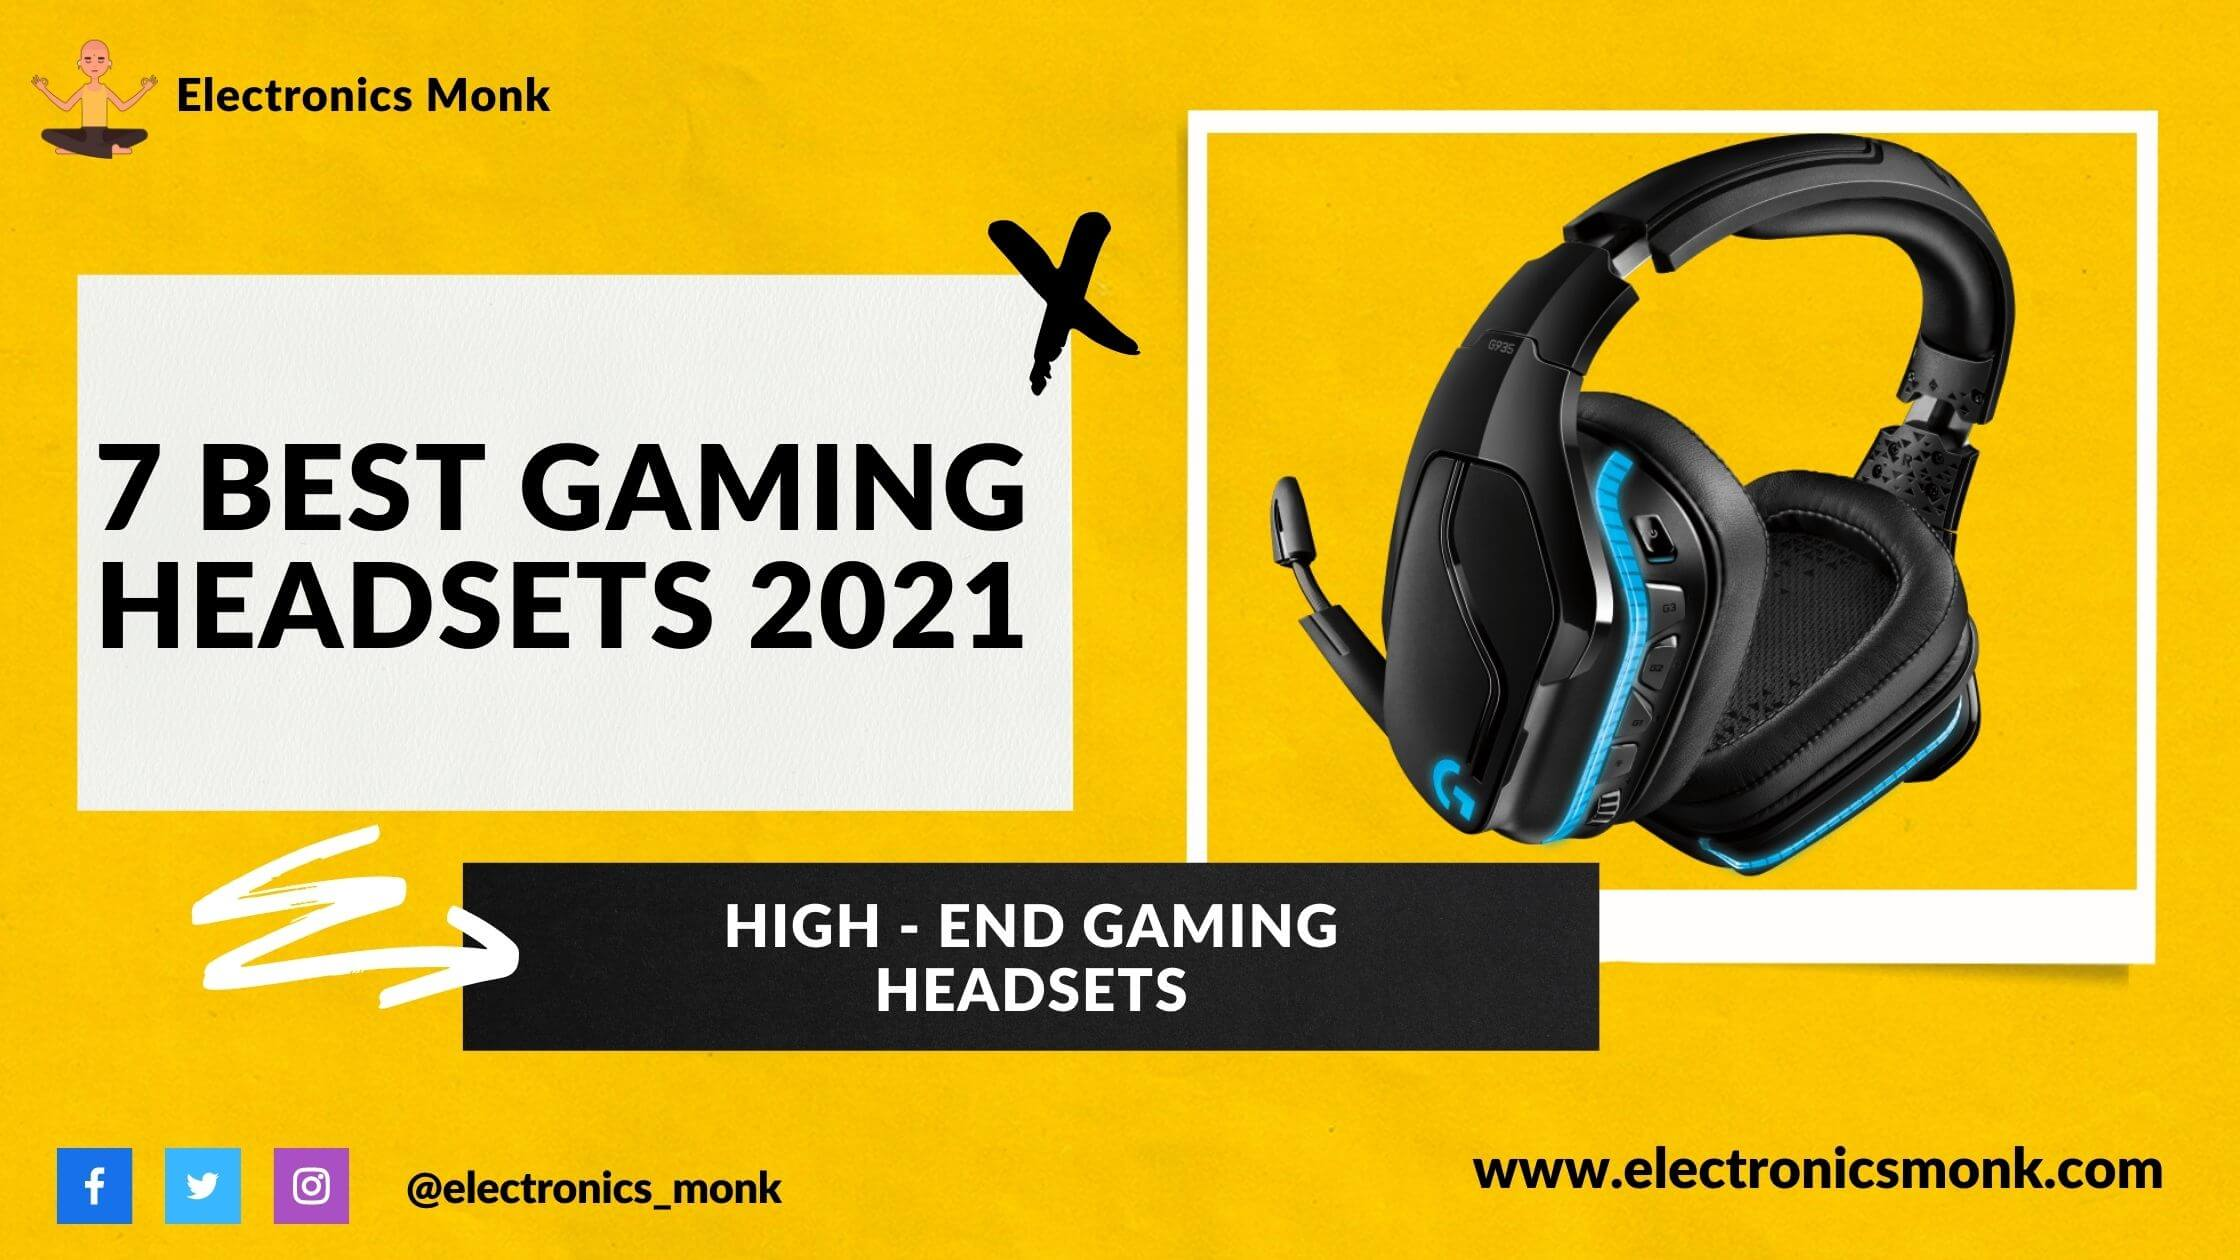 7 Best High-End Gaming Headsets 2021